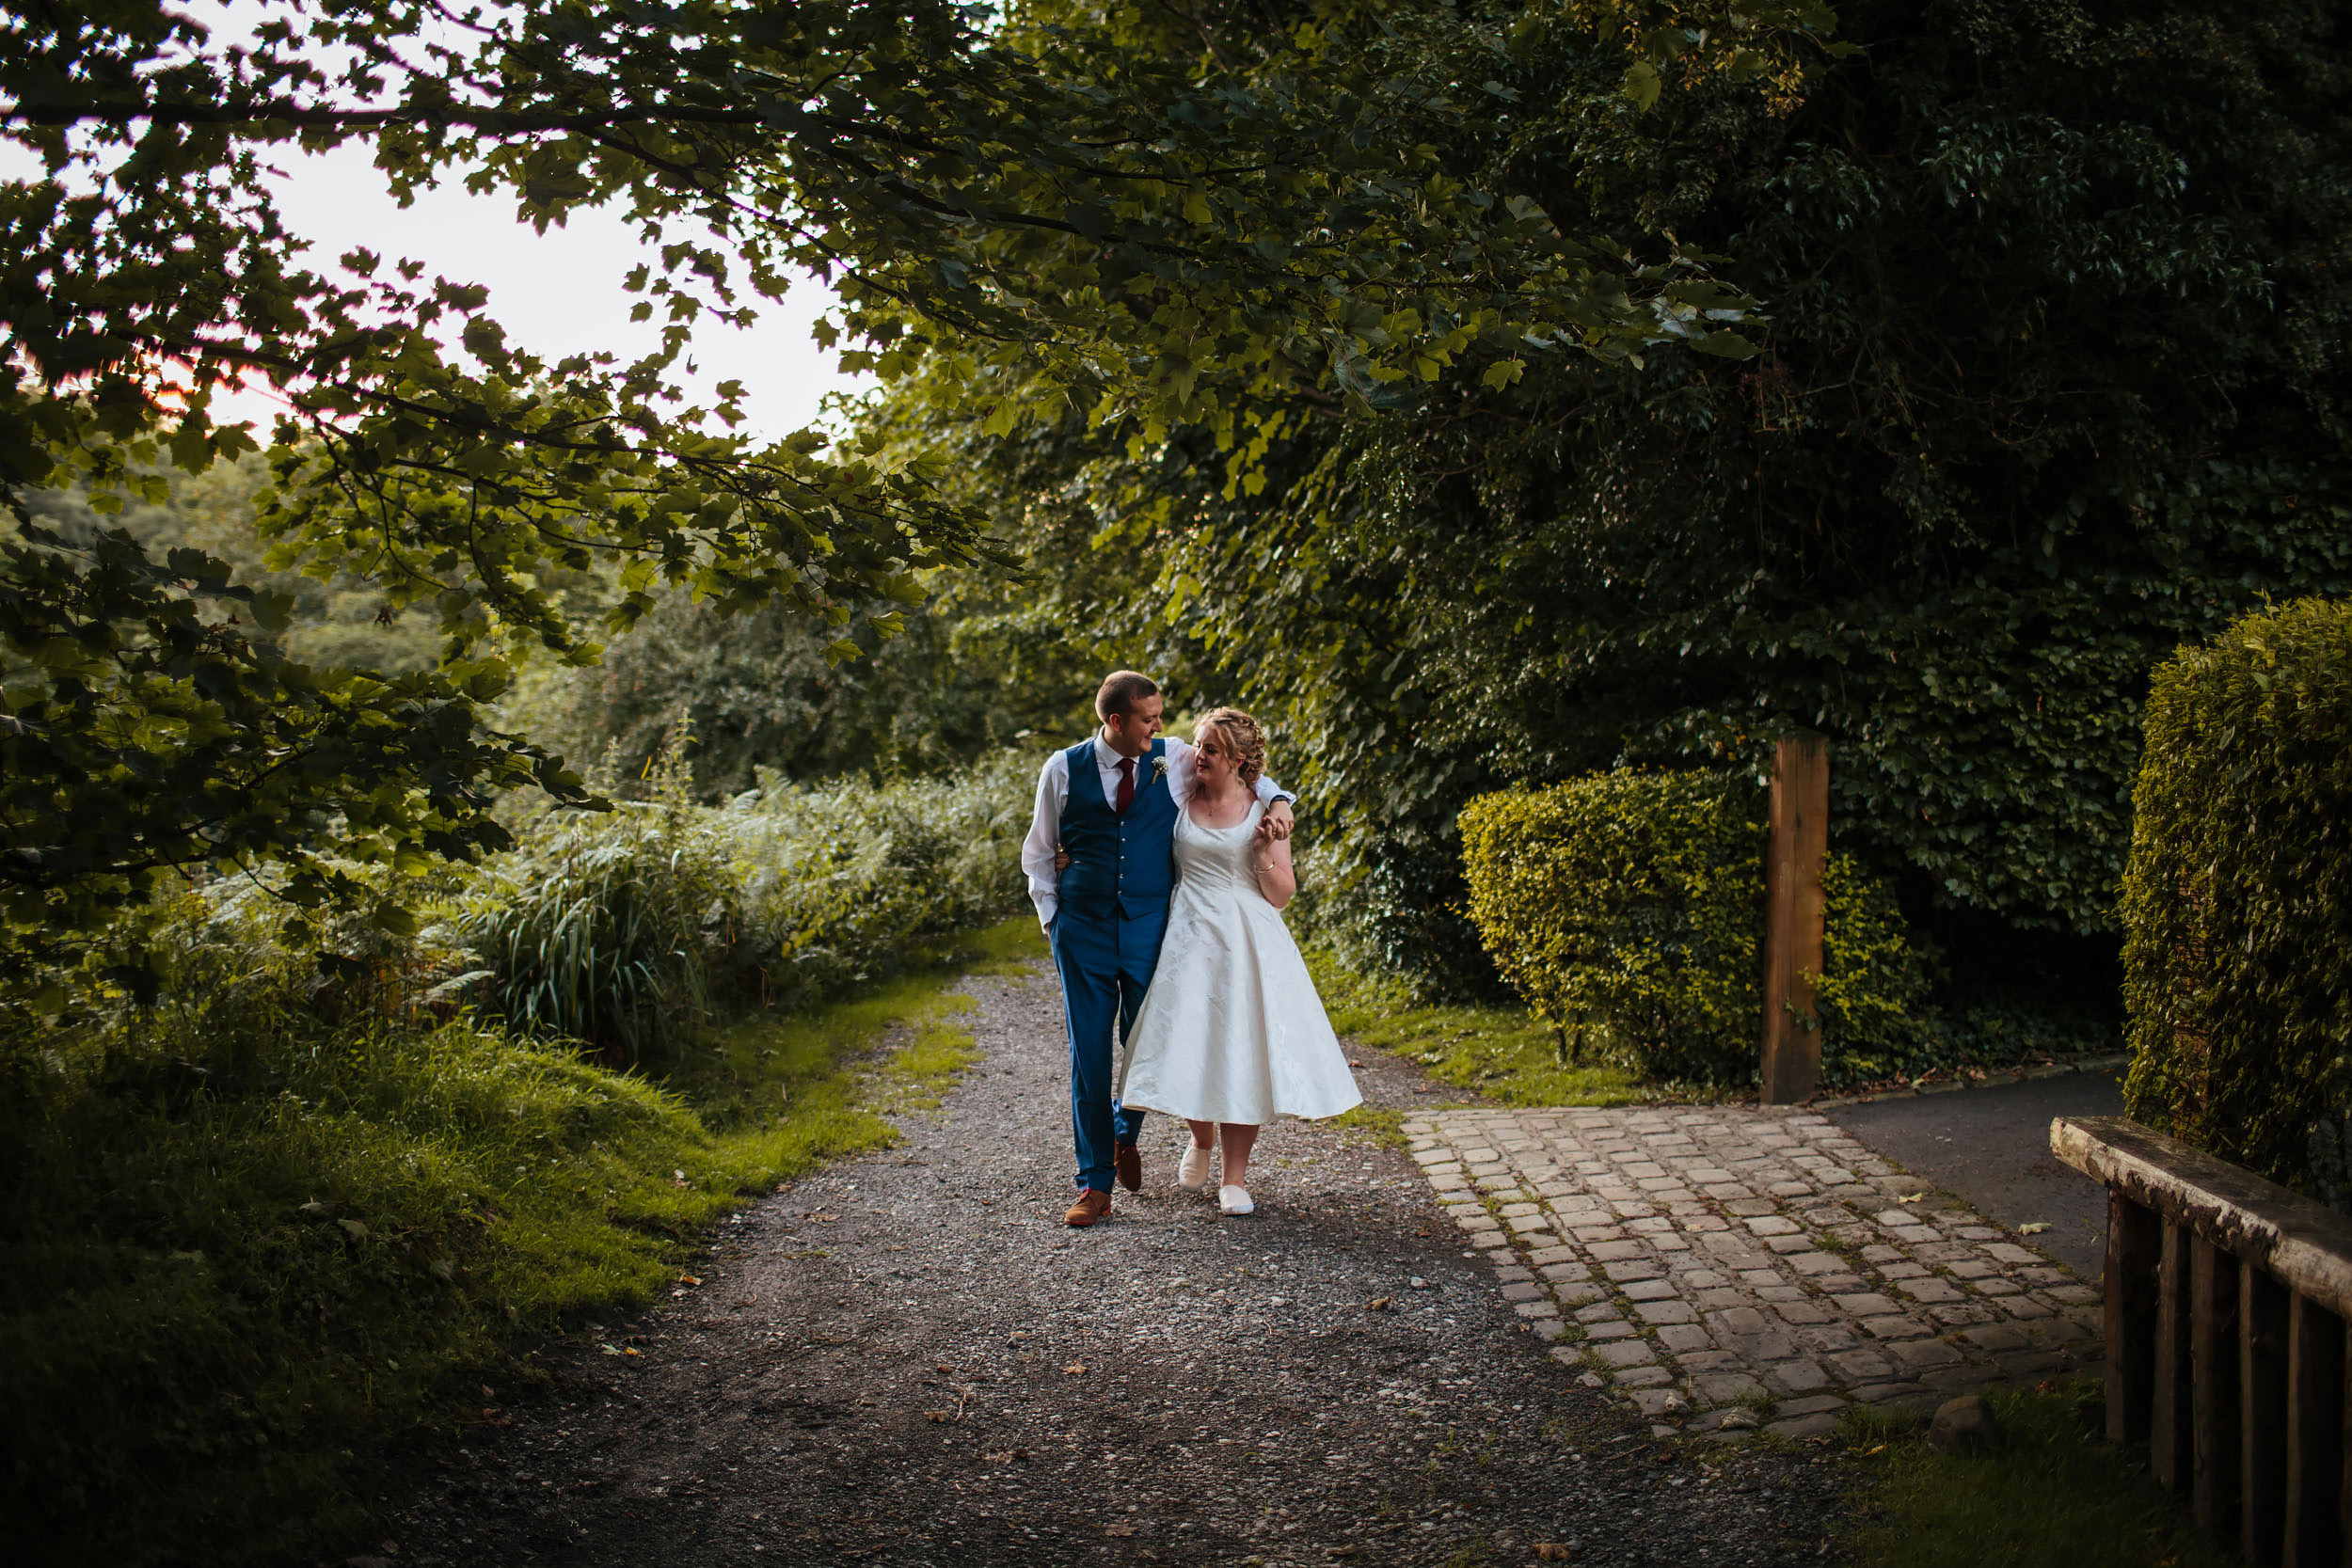 Bride and groom pose for a photograph on their wedding day